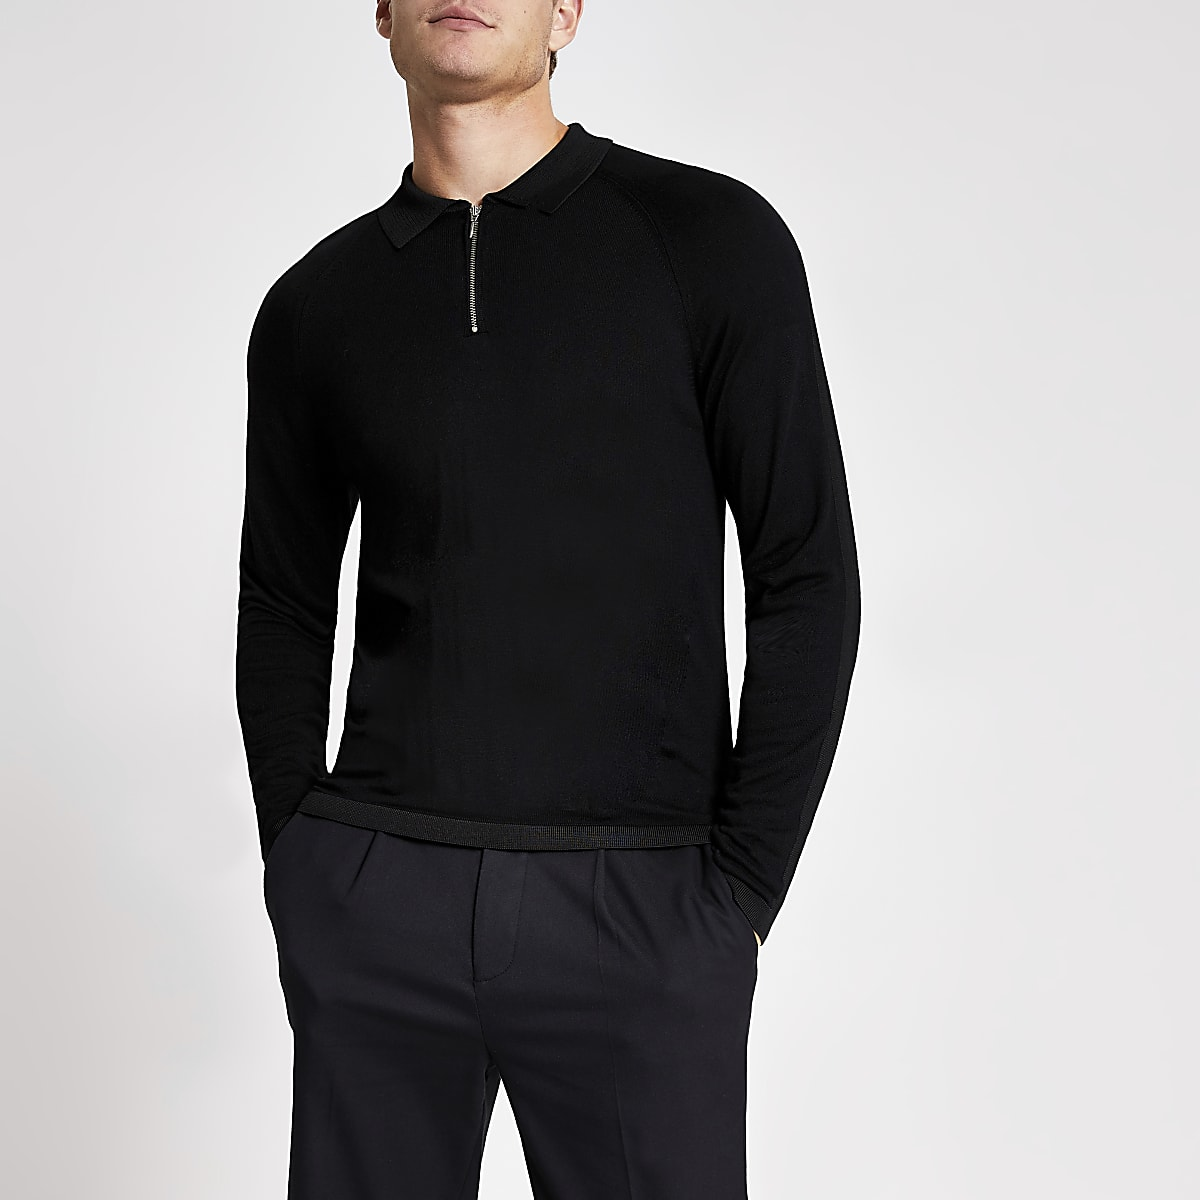 Black slim fit half zip knitted polo shirt